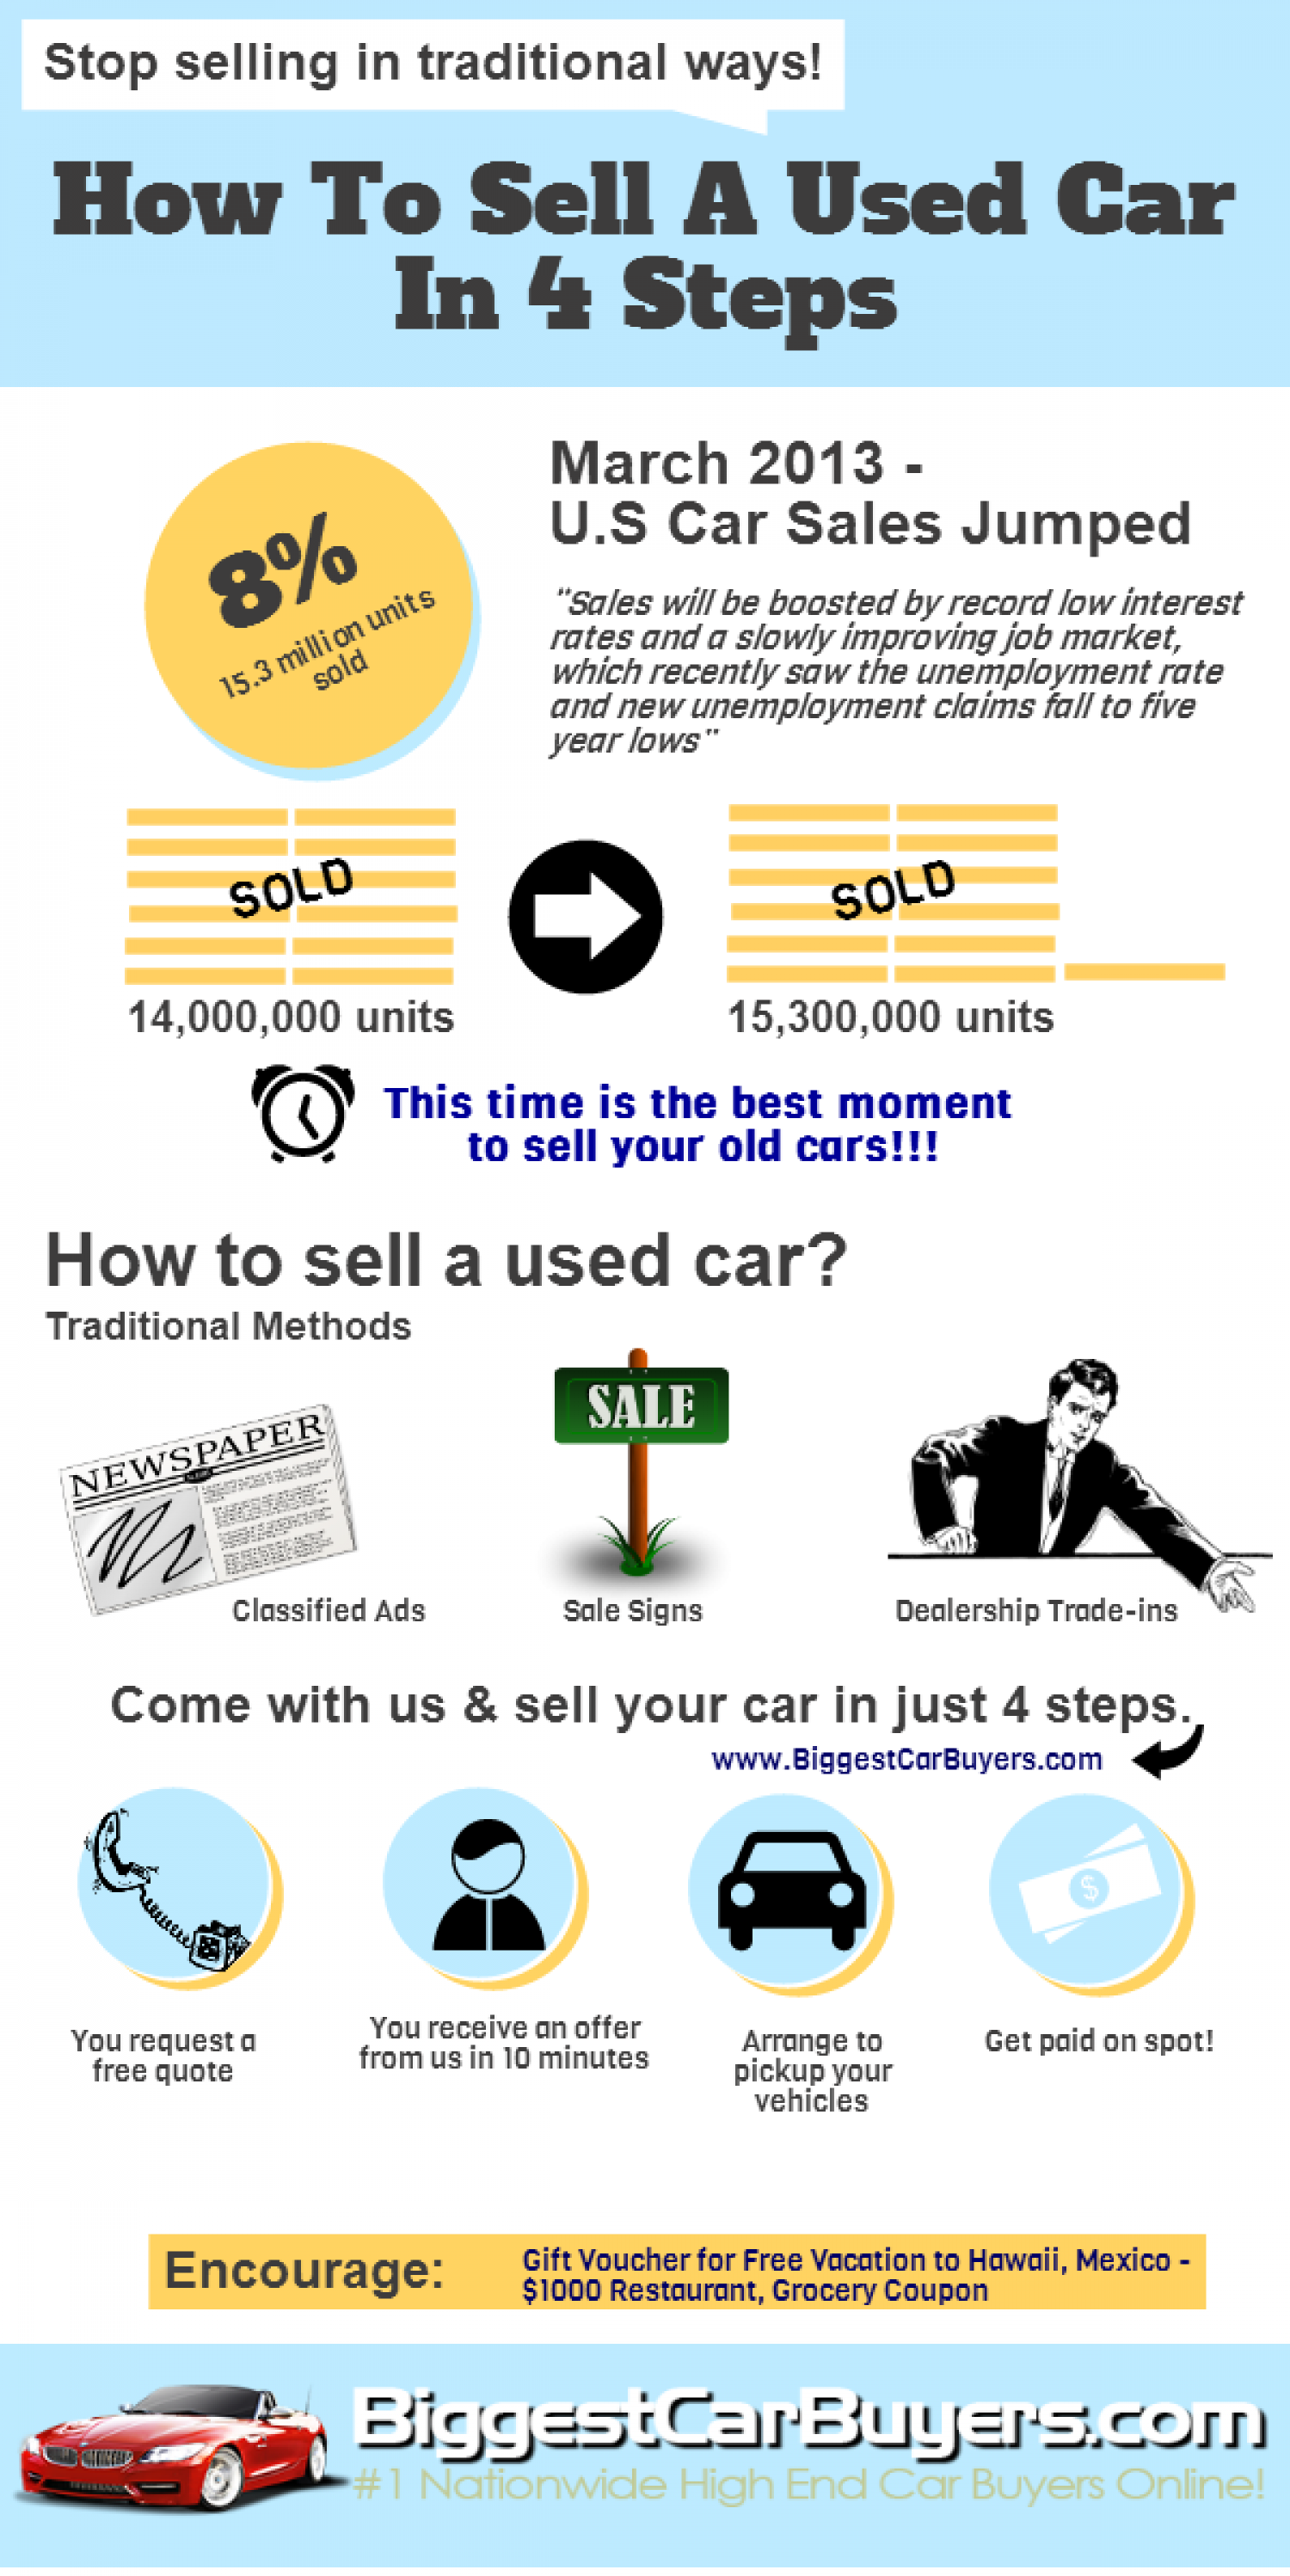 How To Sell A Used Car In 4 Steps | Visual.ly